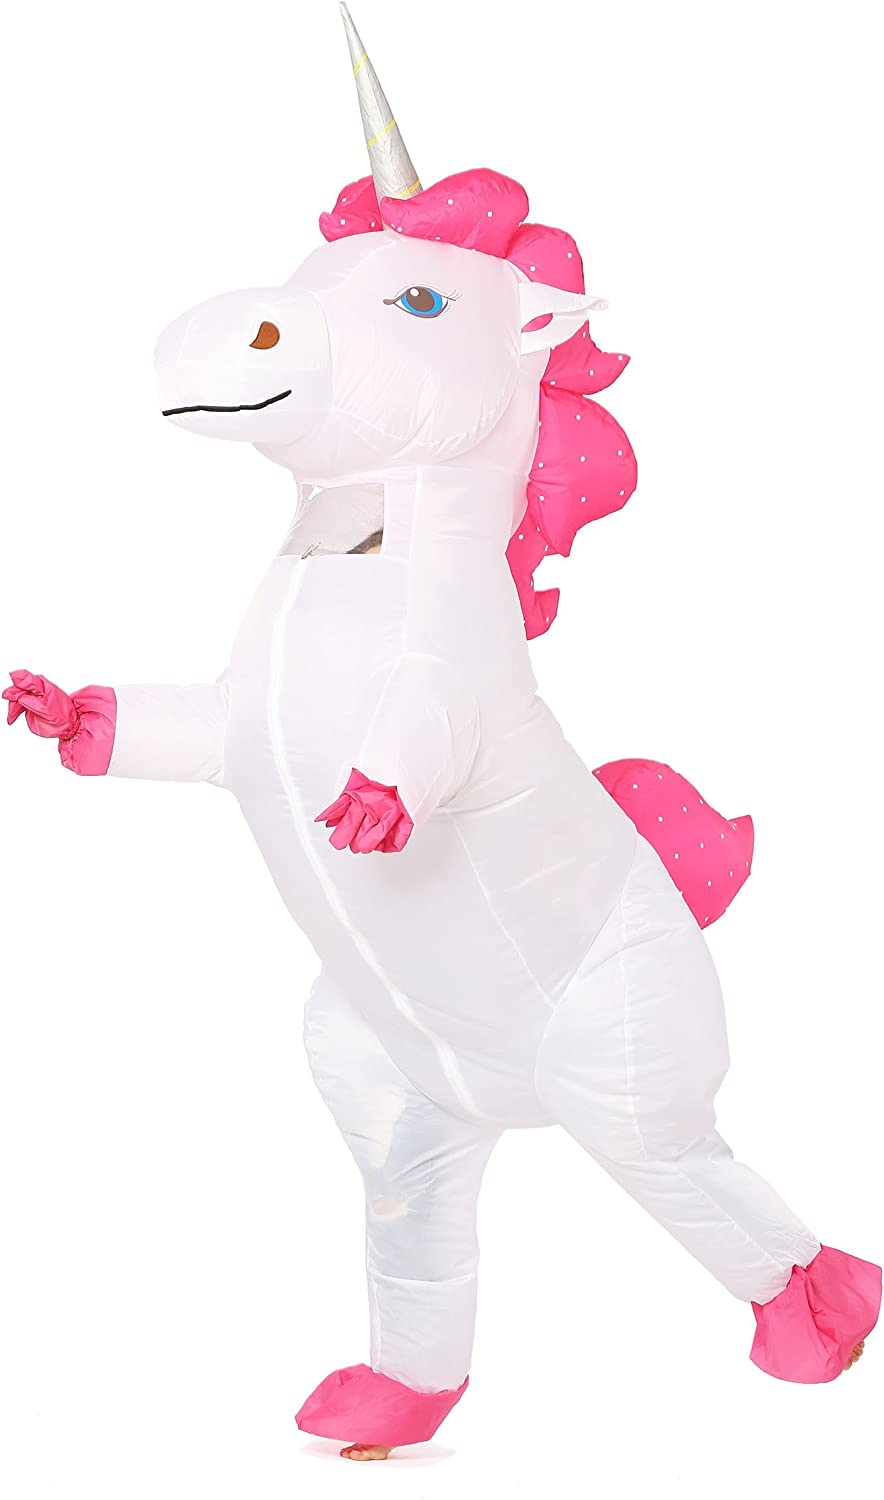 GOPRIME Challenge the lowest price Rapid rise Unicorn Costumes